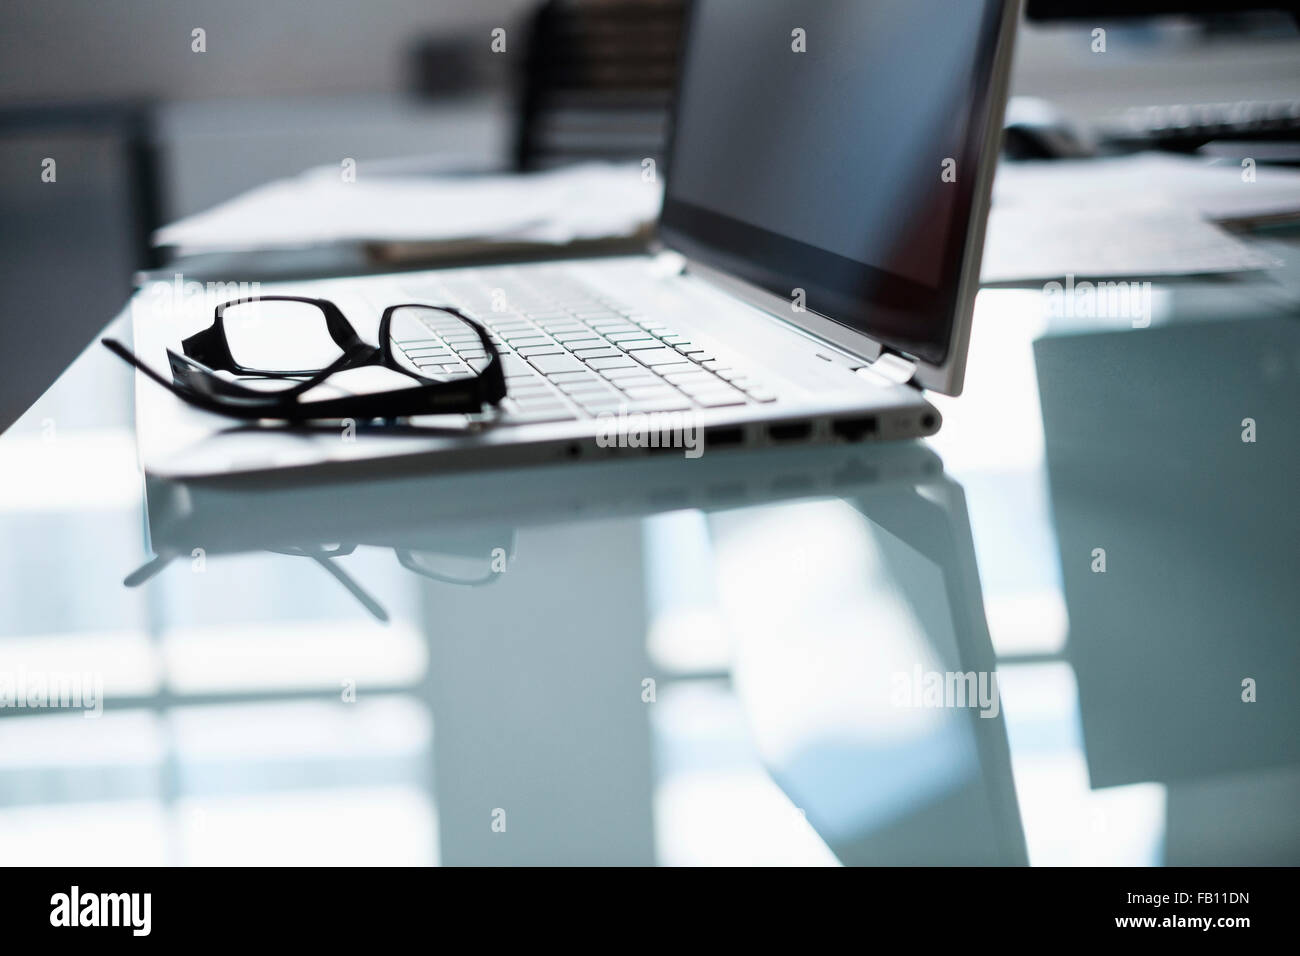 Eyeglasses and laptop on desk in office - Stock Image